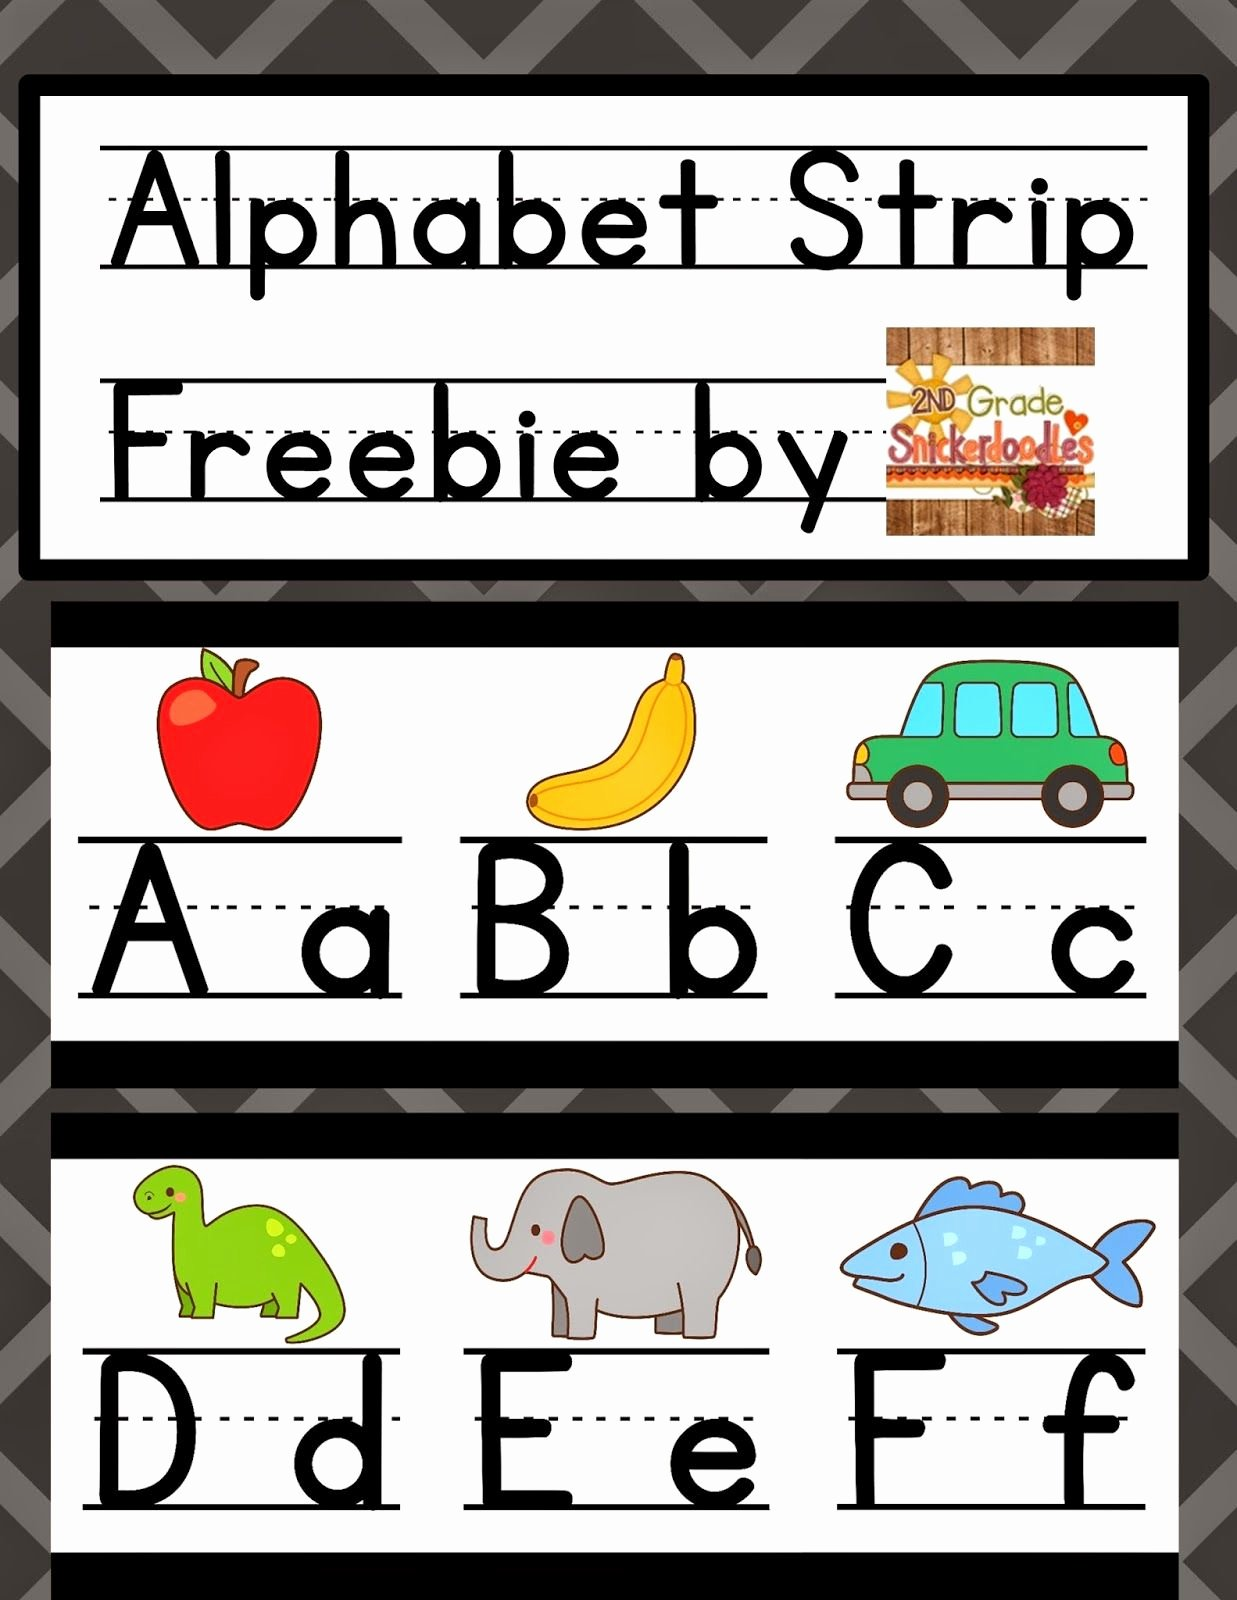 Alphabet Poster for Classroom Luxury 2nd Grade Snickerdoodles Alphabet Strip Posters Freebie